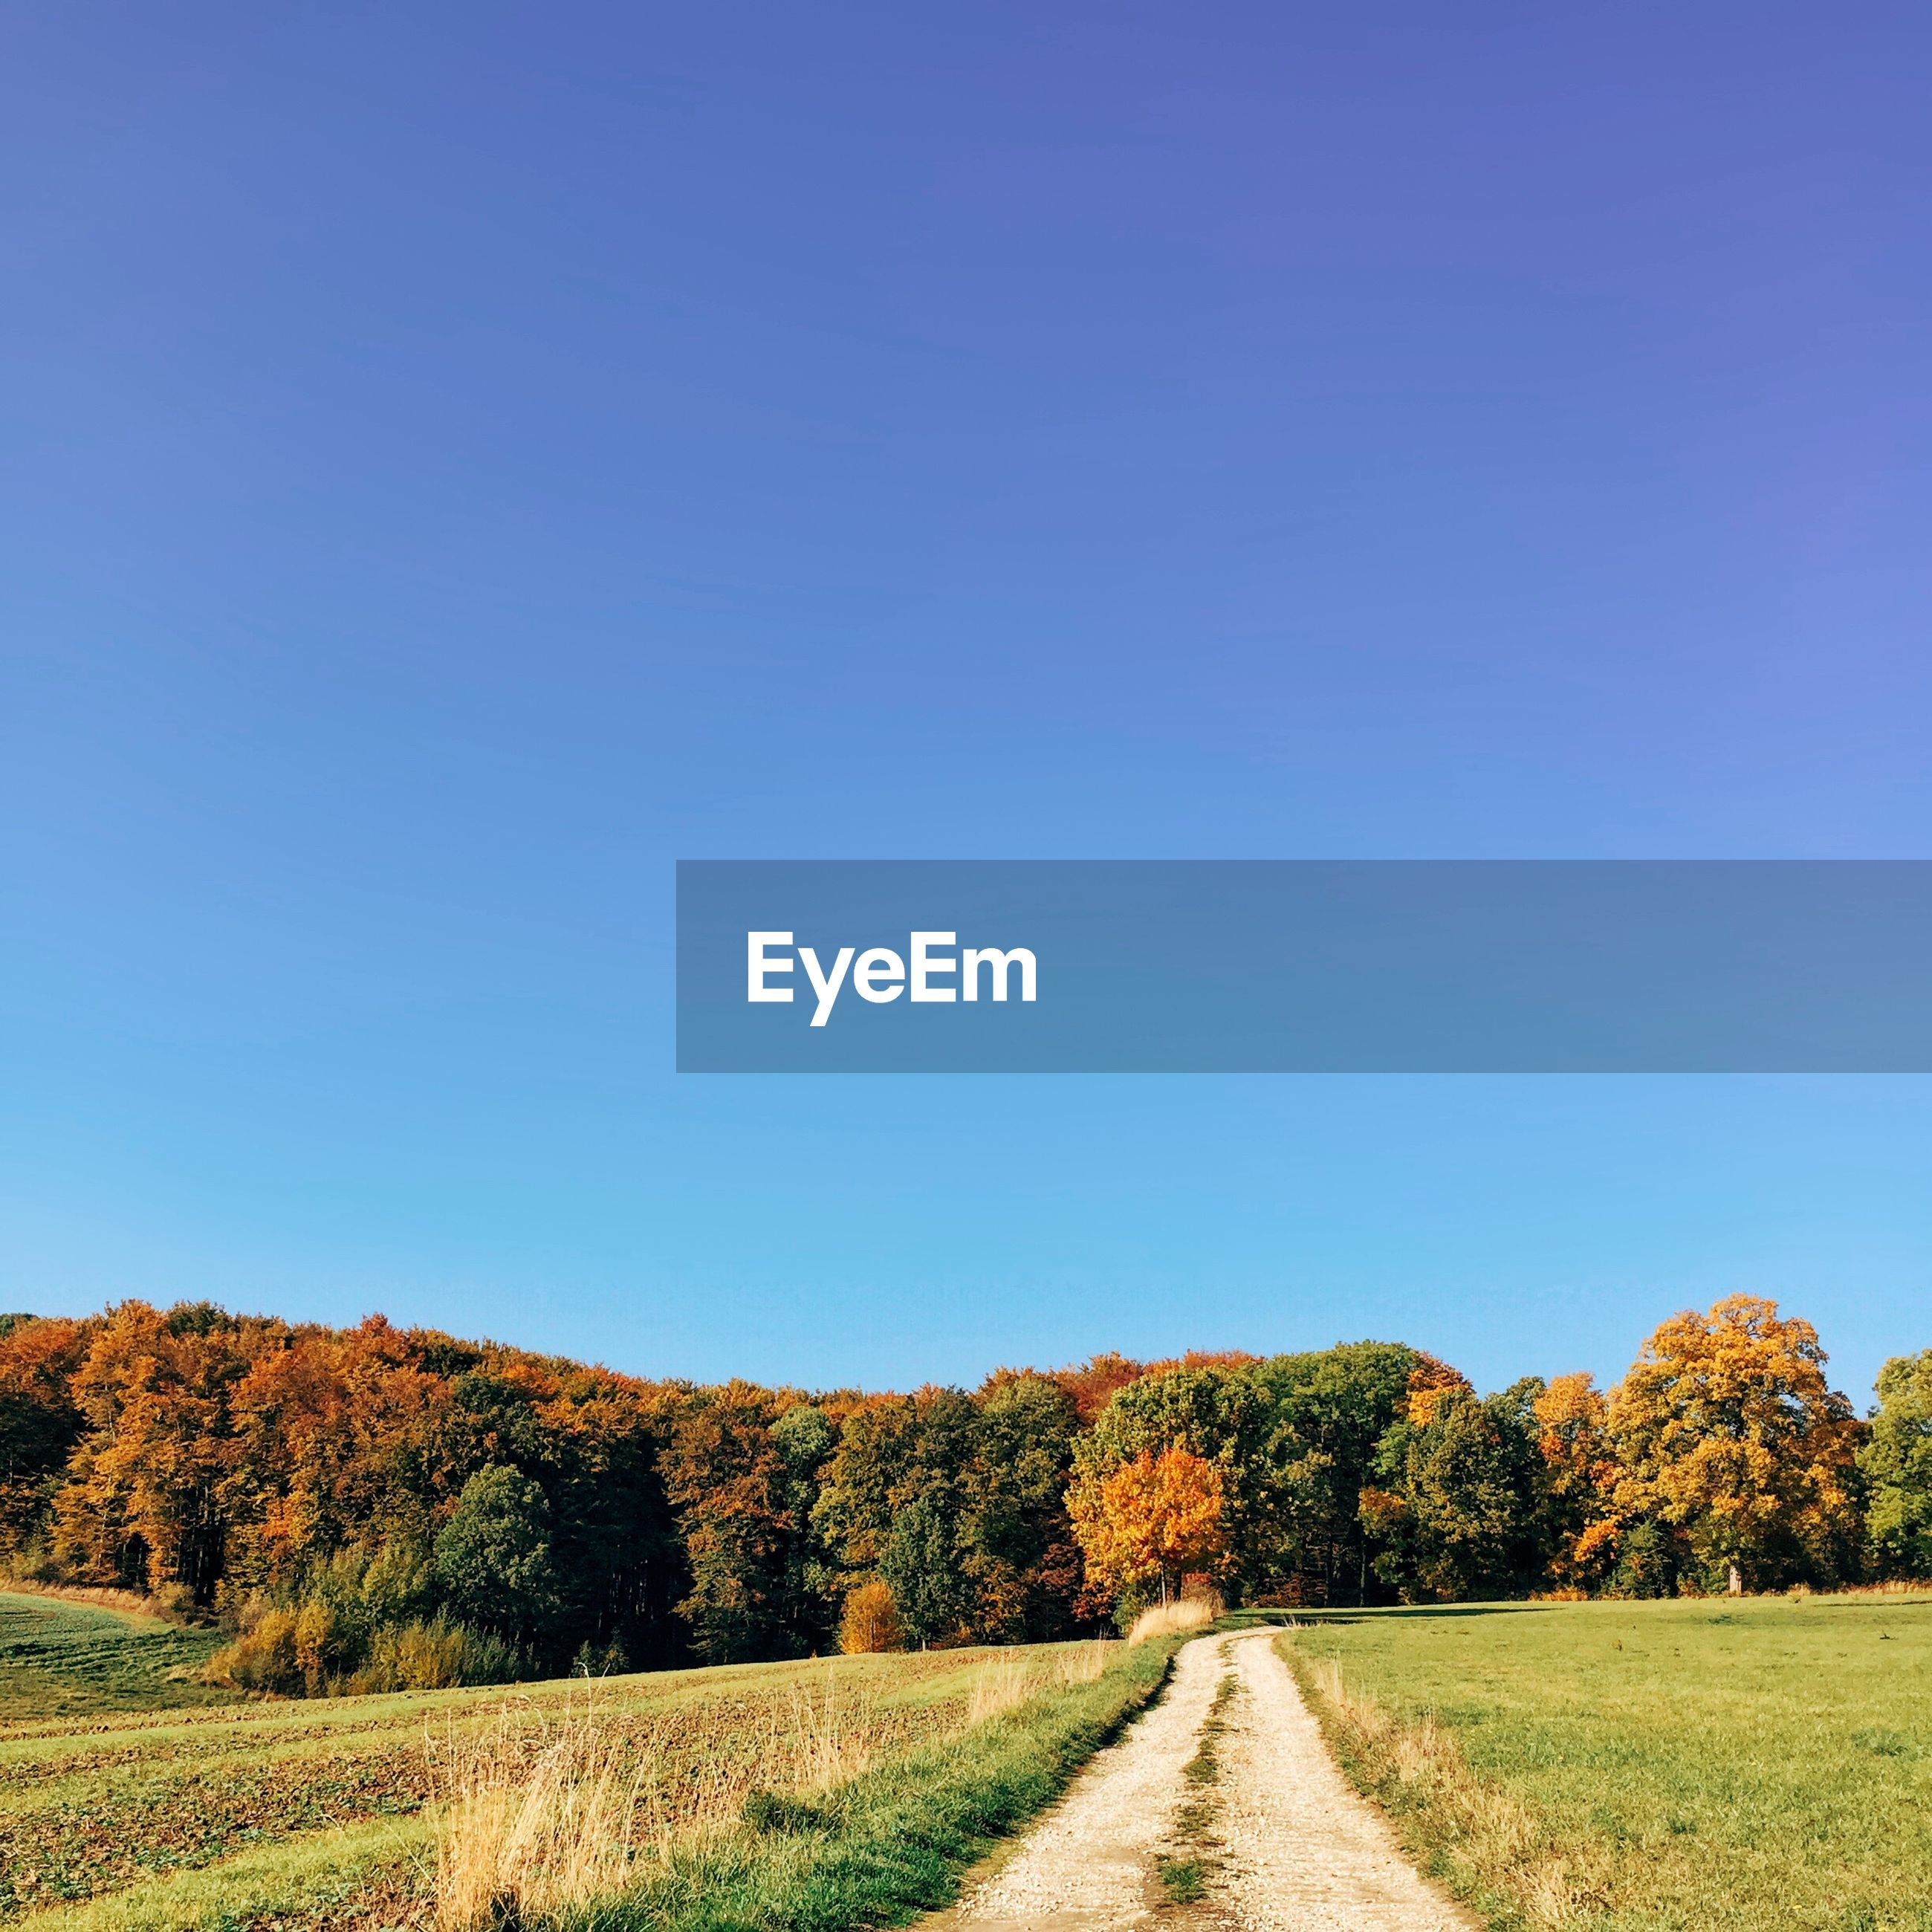 Footpath amidst grassy field by trees against clear sky during autumn